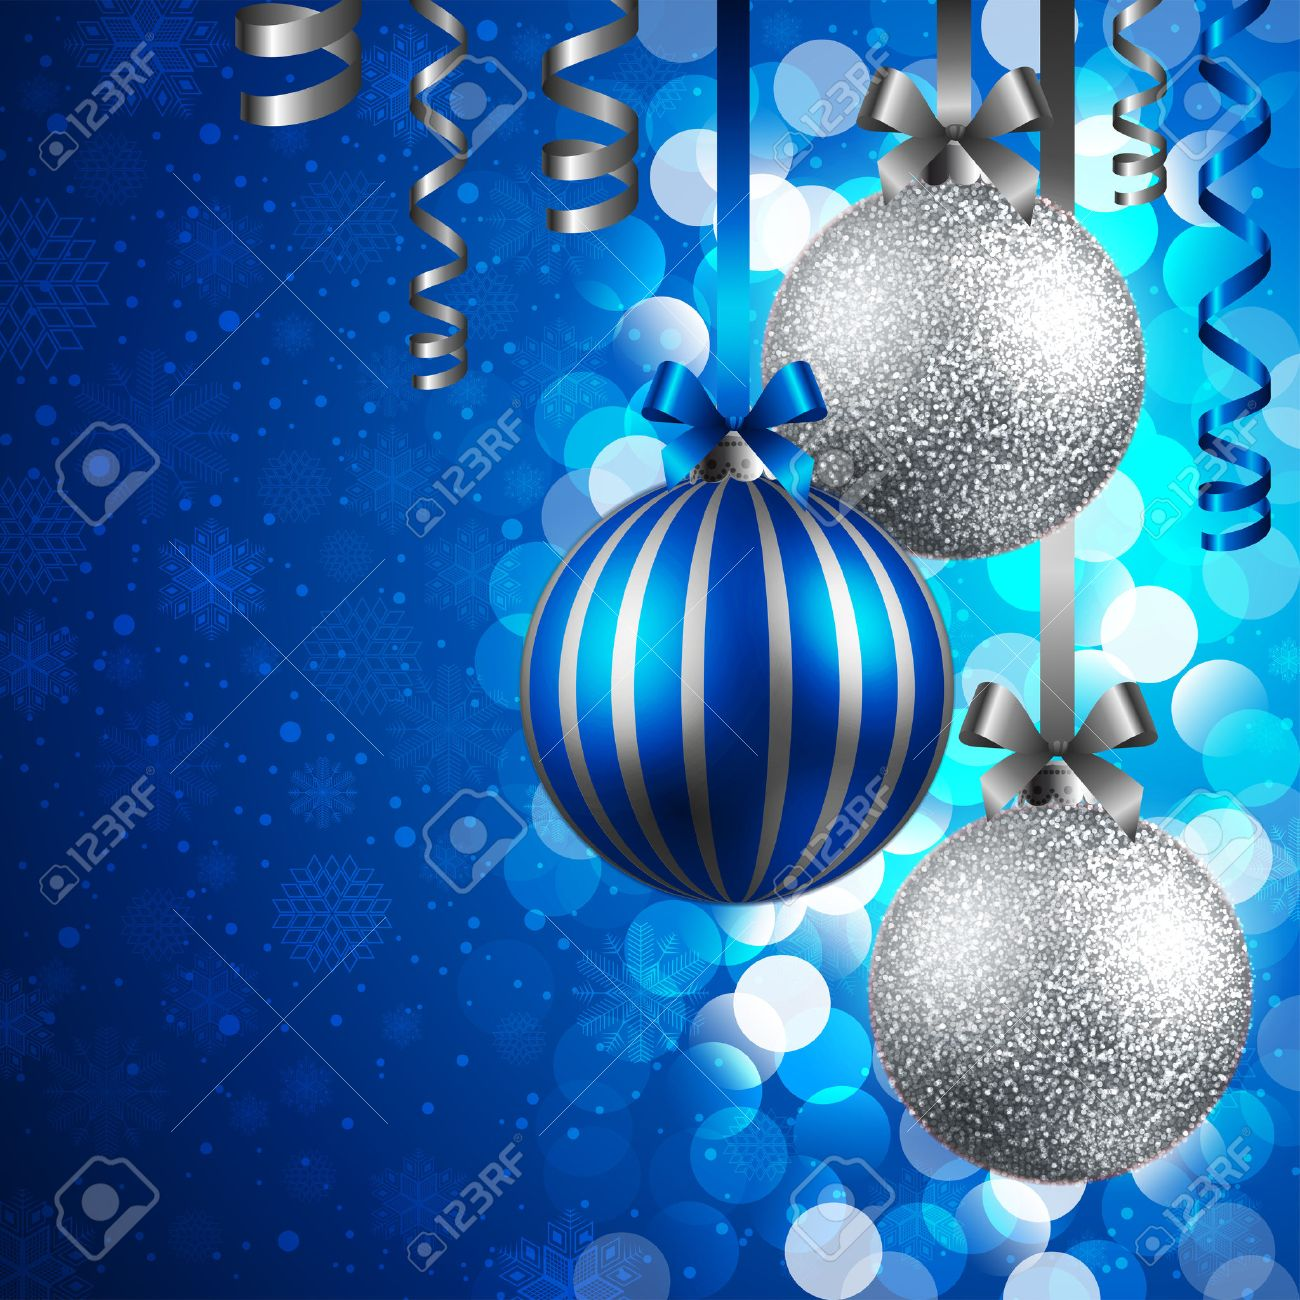 Christmas Background With Blue And Silver Baubles Royalty Free ...